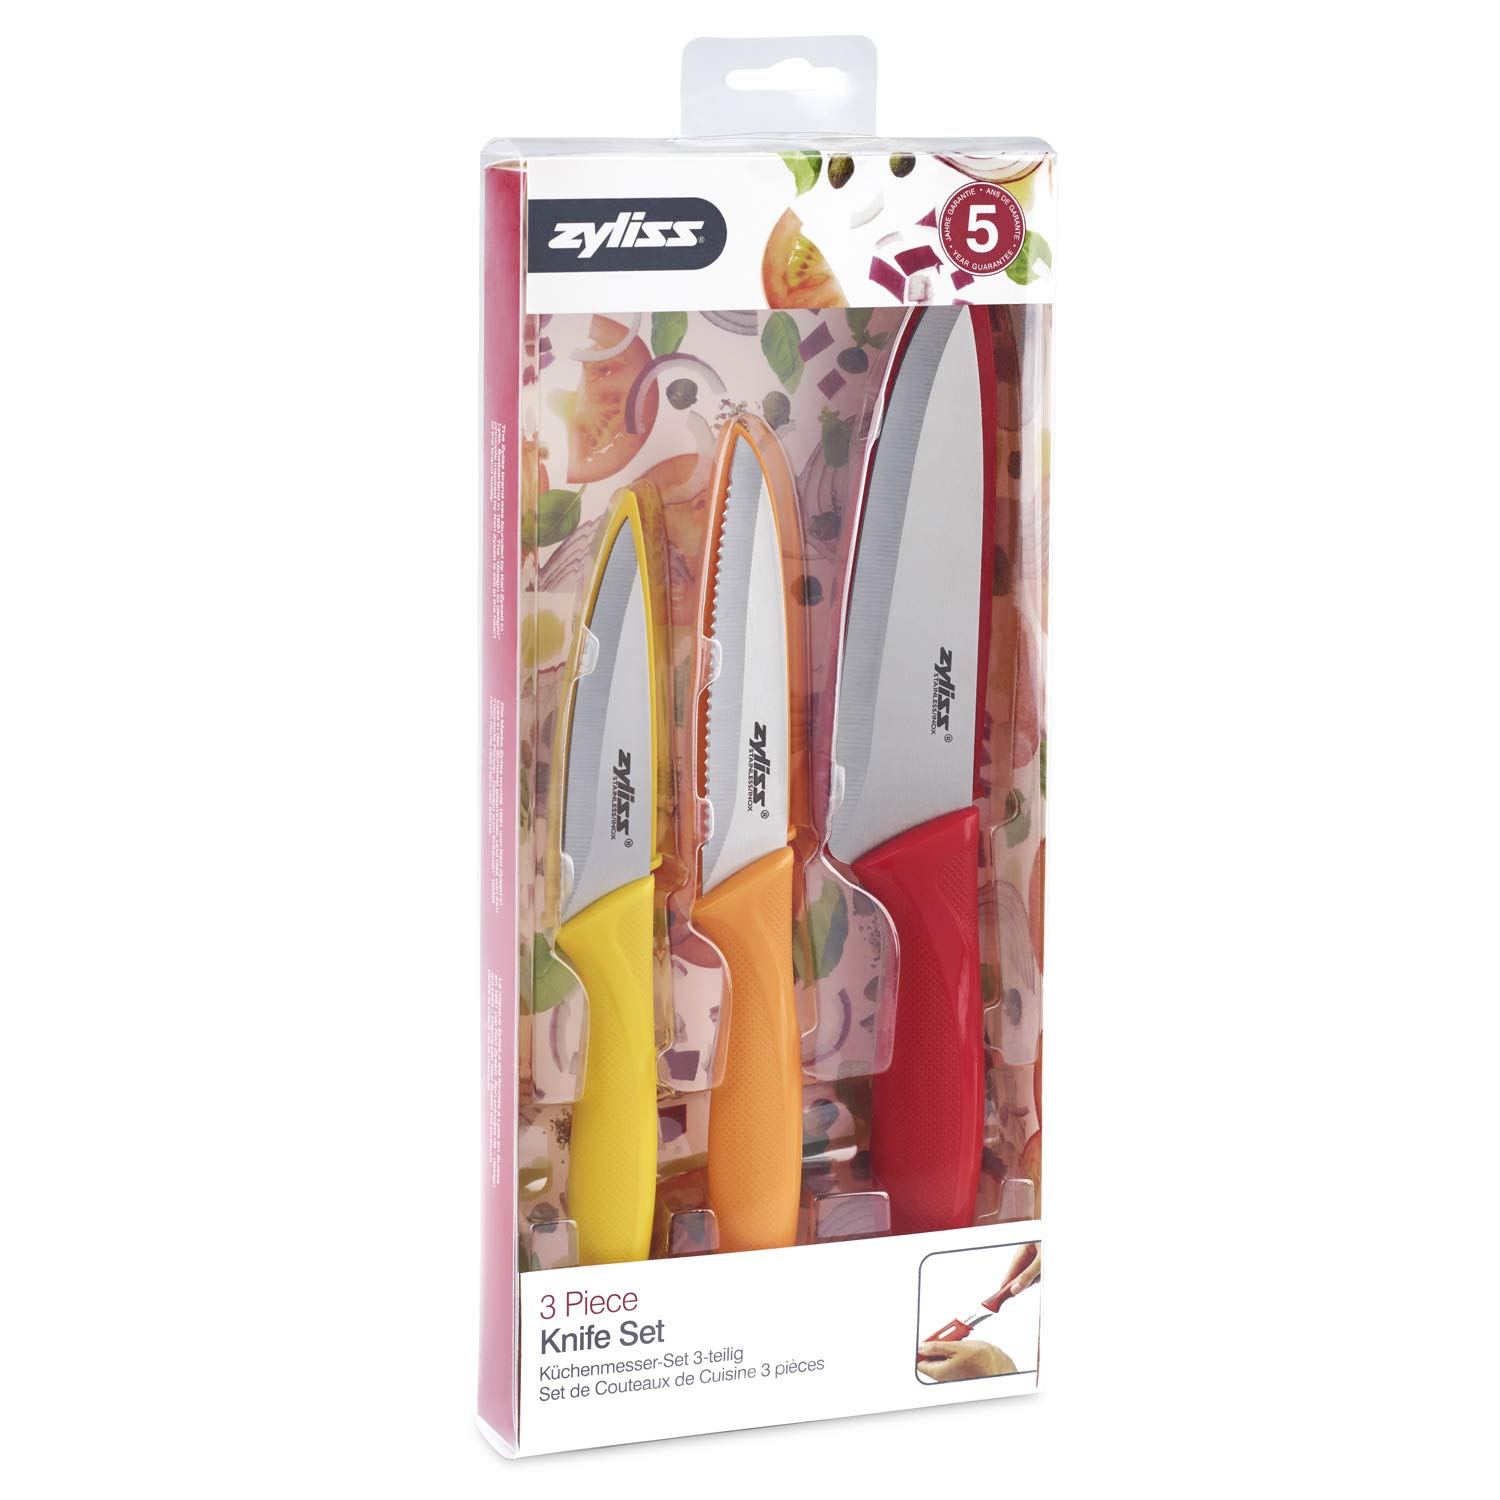 ZYLISS 3 Piece Paring Knife Set with Sheath Covers by Zyliss